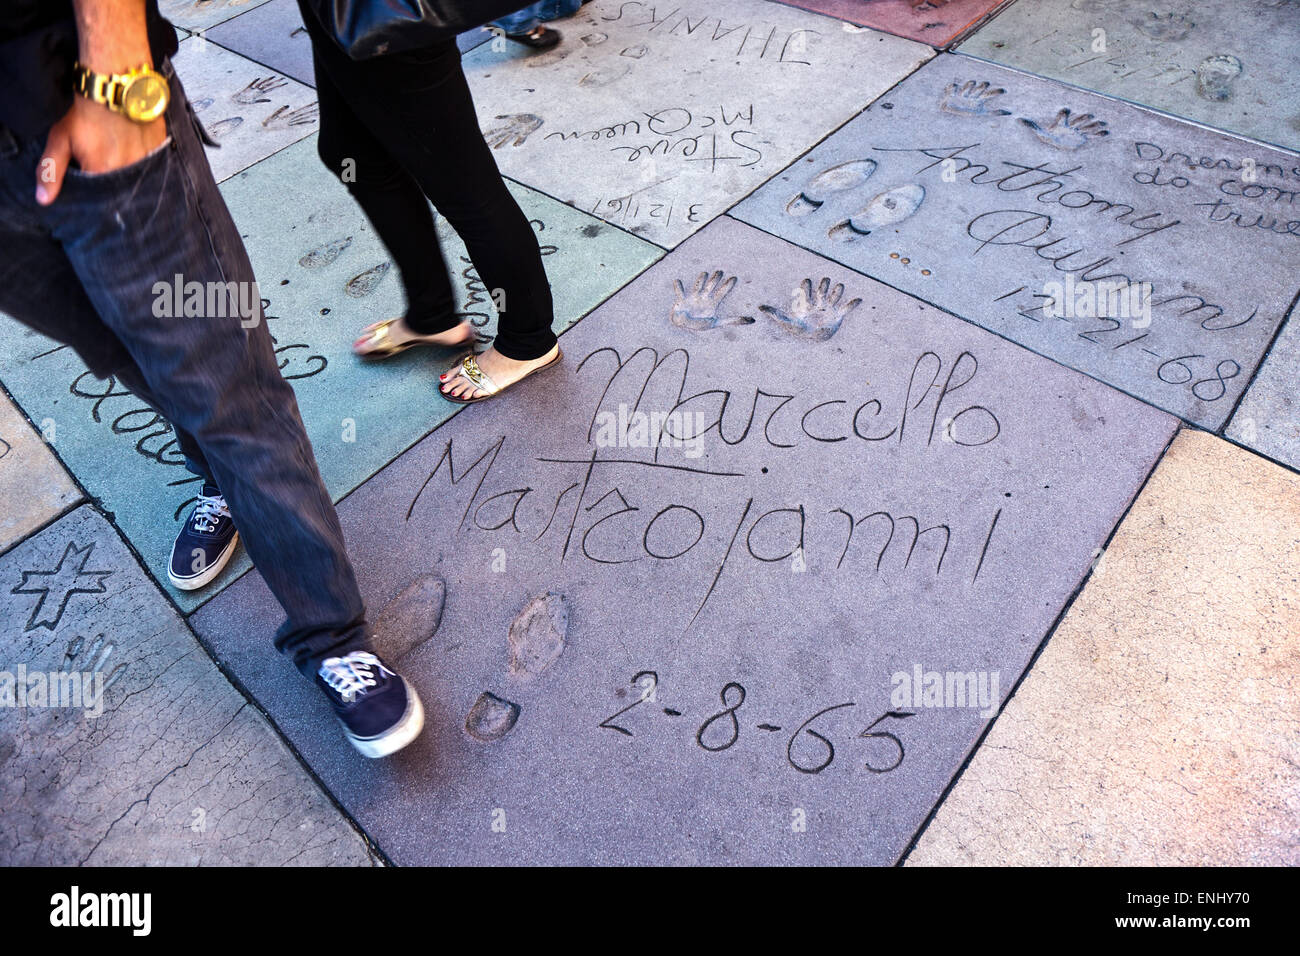 U.S.A., California, Los Angeles, Hollywood, hand and foot prints of celebrities outside the Grauman's Chinese - Stock Image